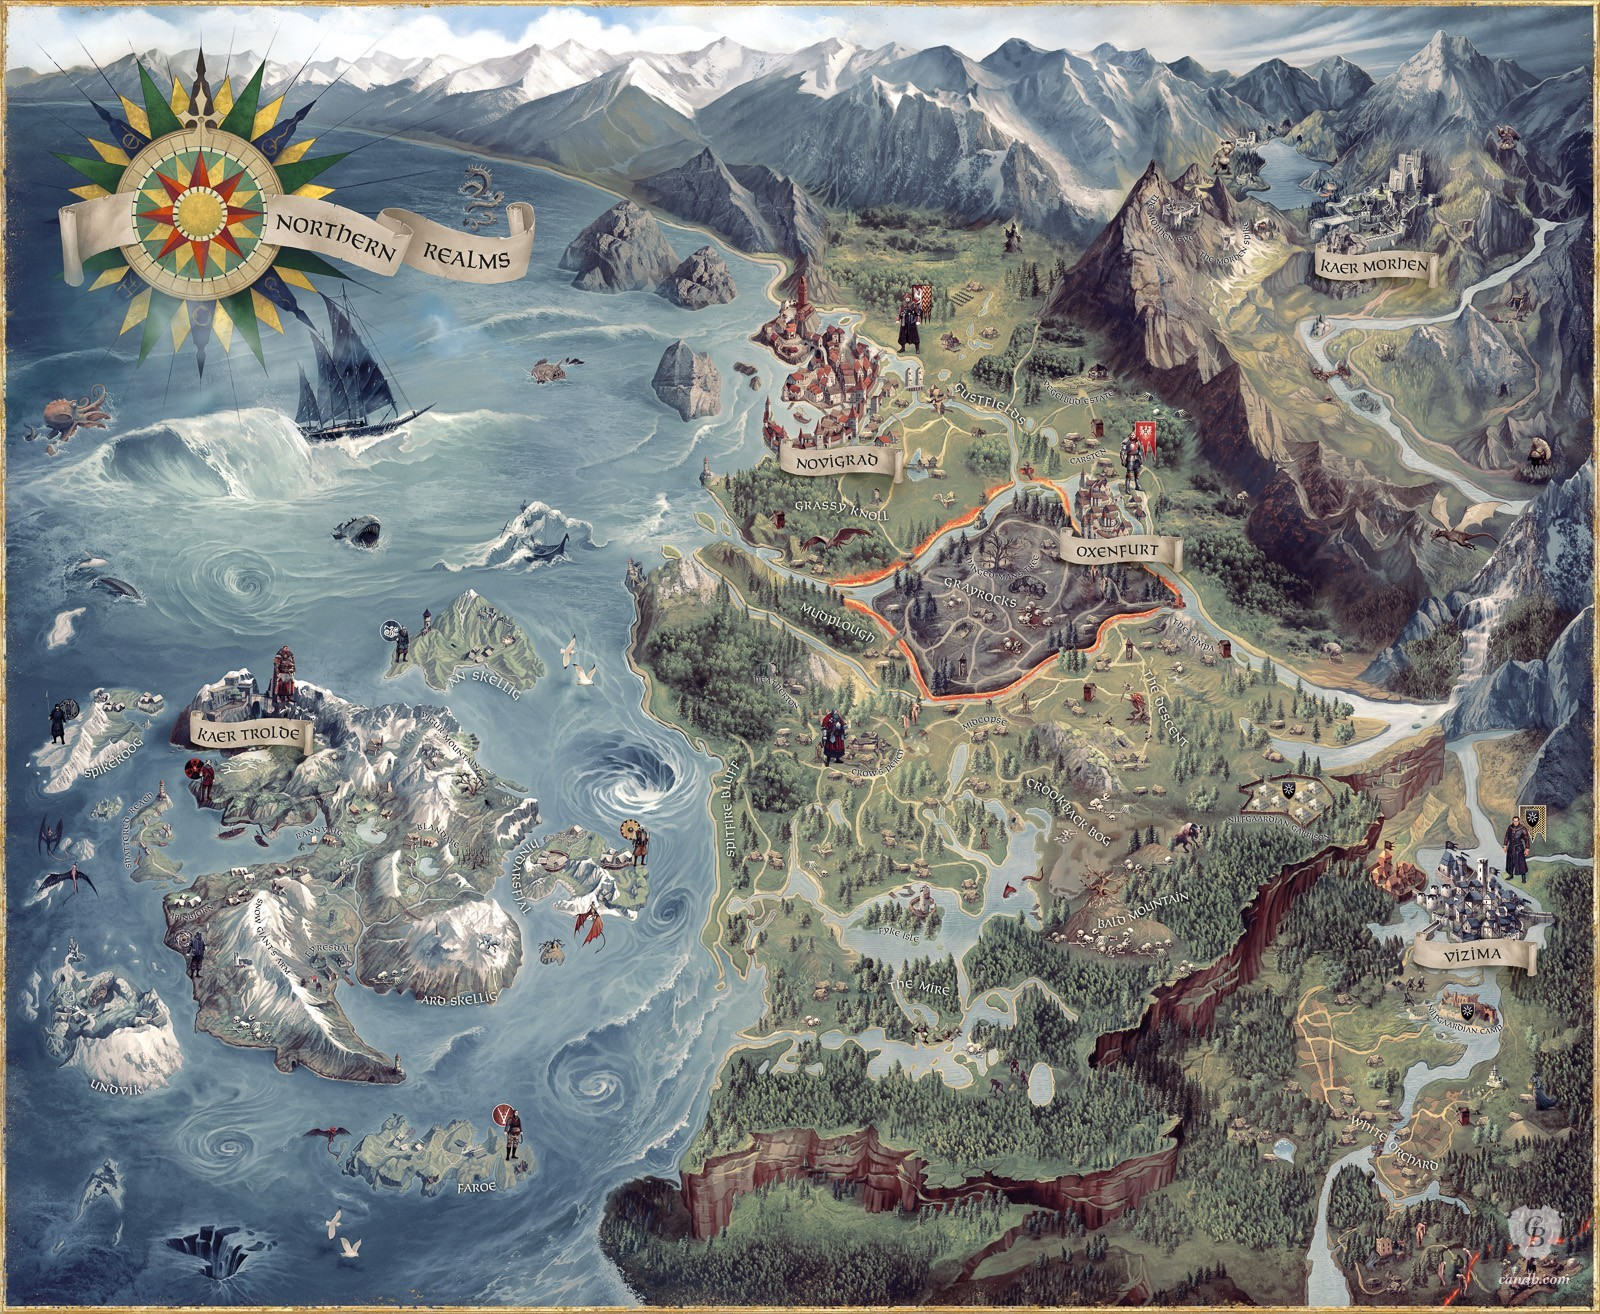 Artwork The Witcher 3 World Map CD Projekt Red The Witcher 3 World Map   The Witcher 3 World Map is an official concept  artwork